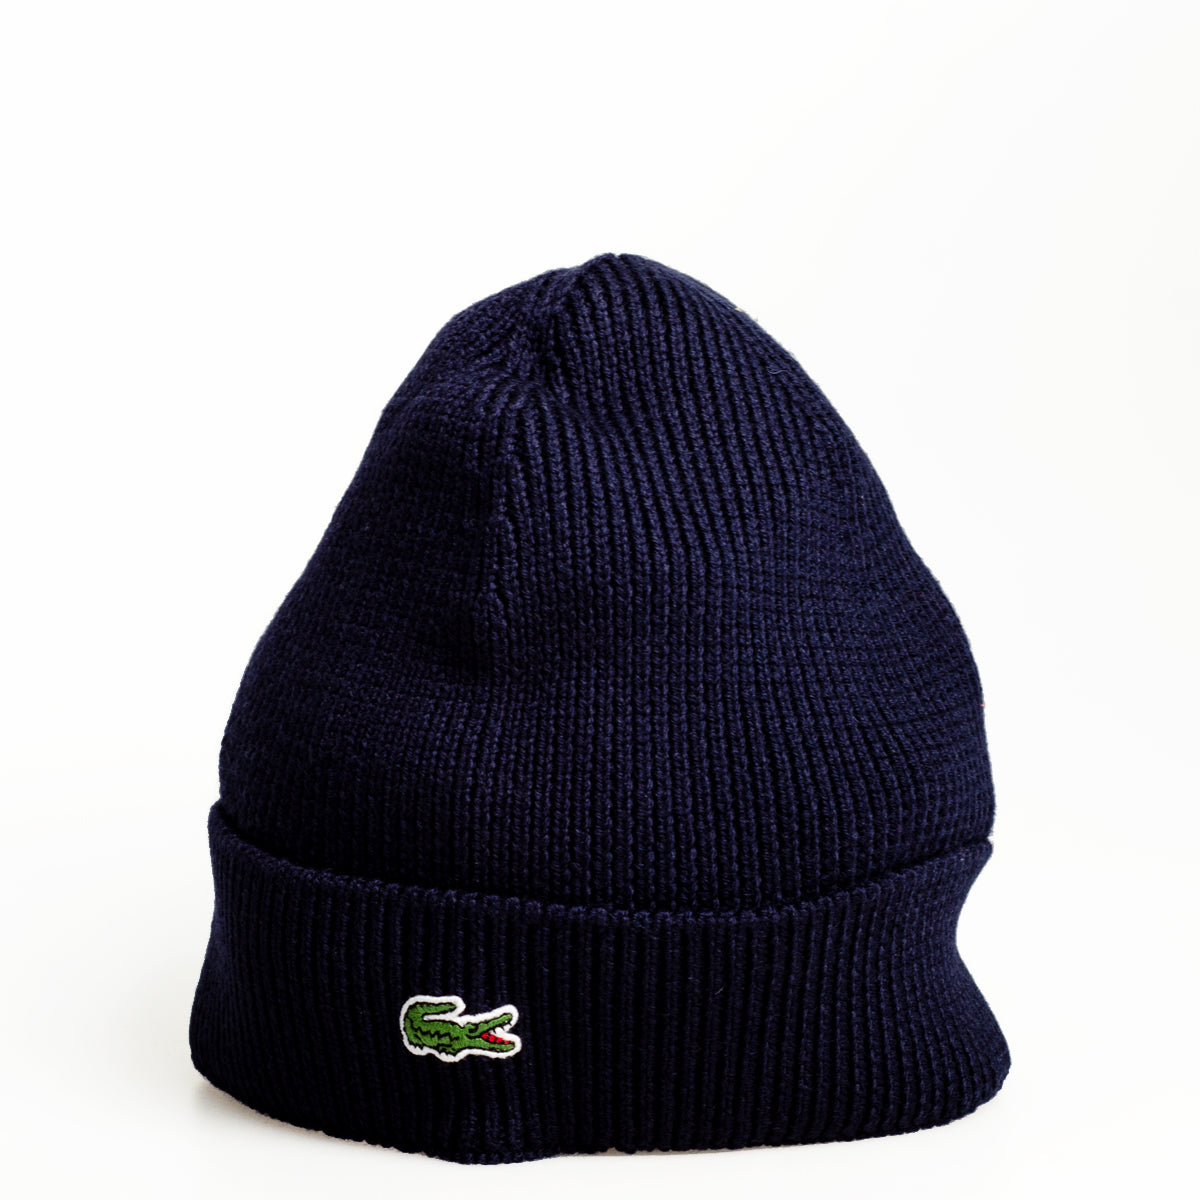 73825faded3 Men s Lacoste Turned Edge Ribbed Wool Beanie Navy Blue RB3502166 ...